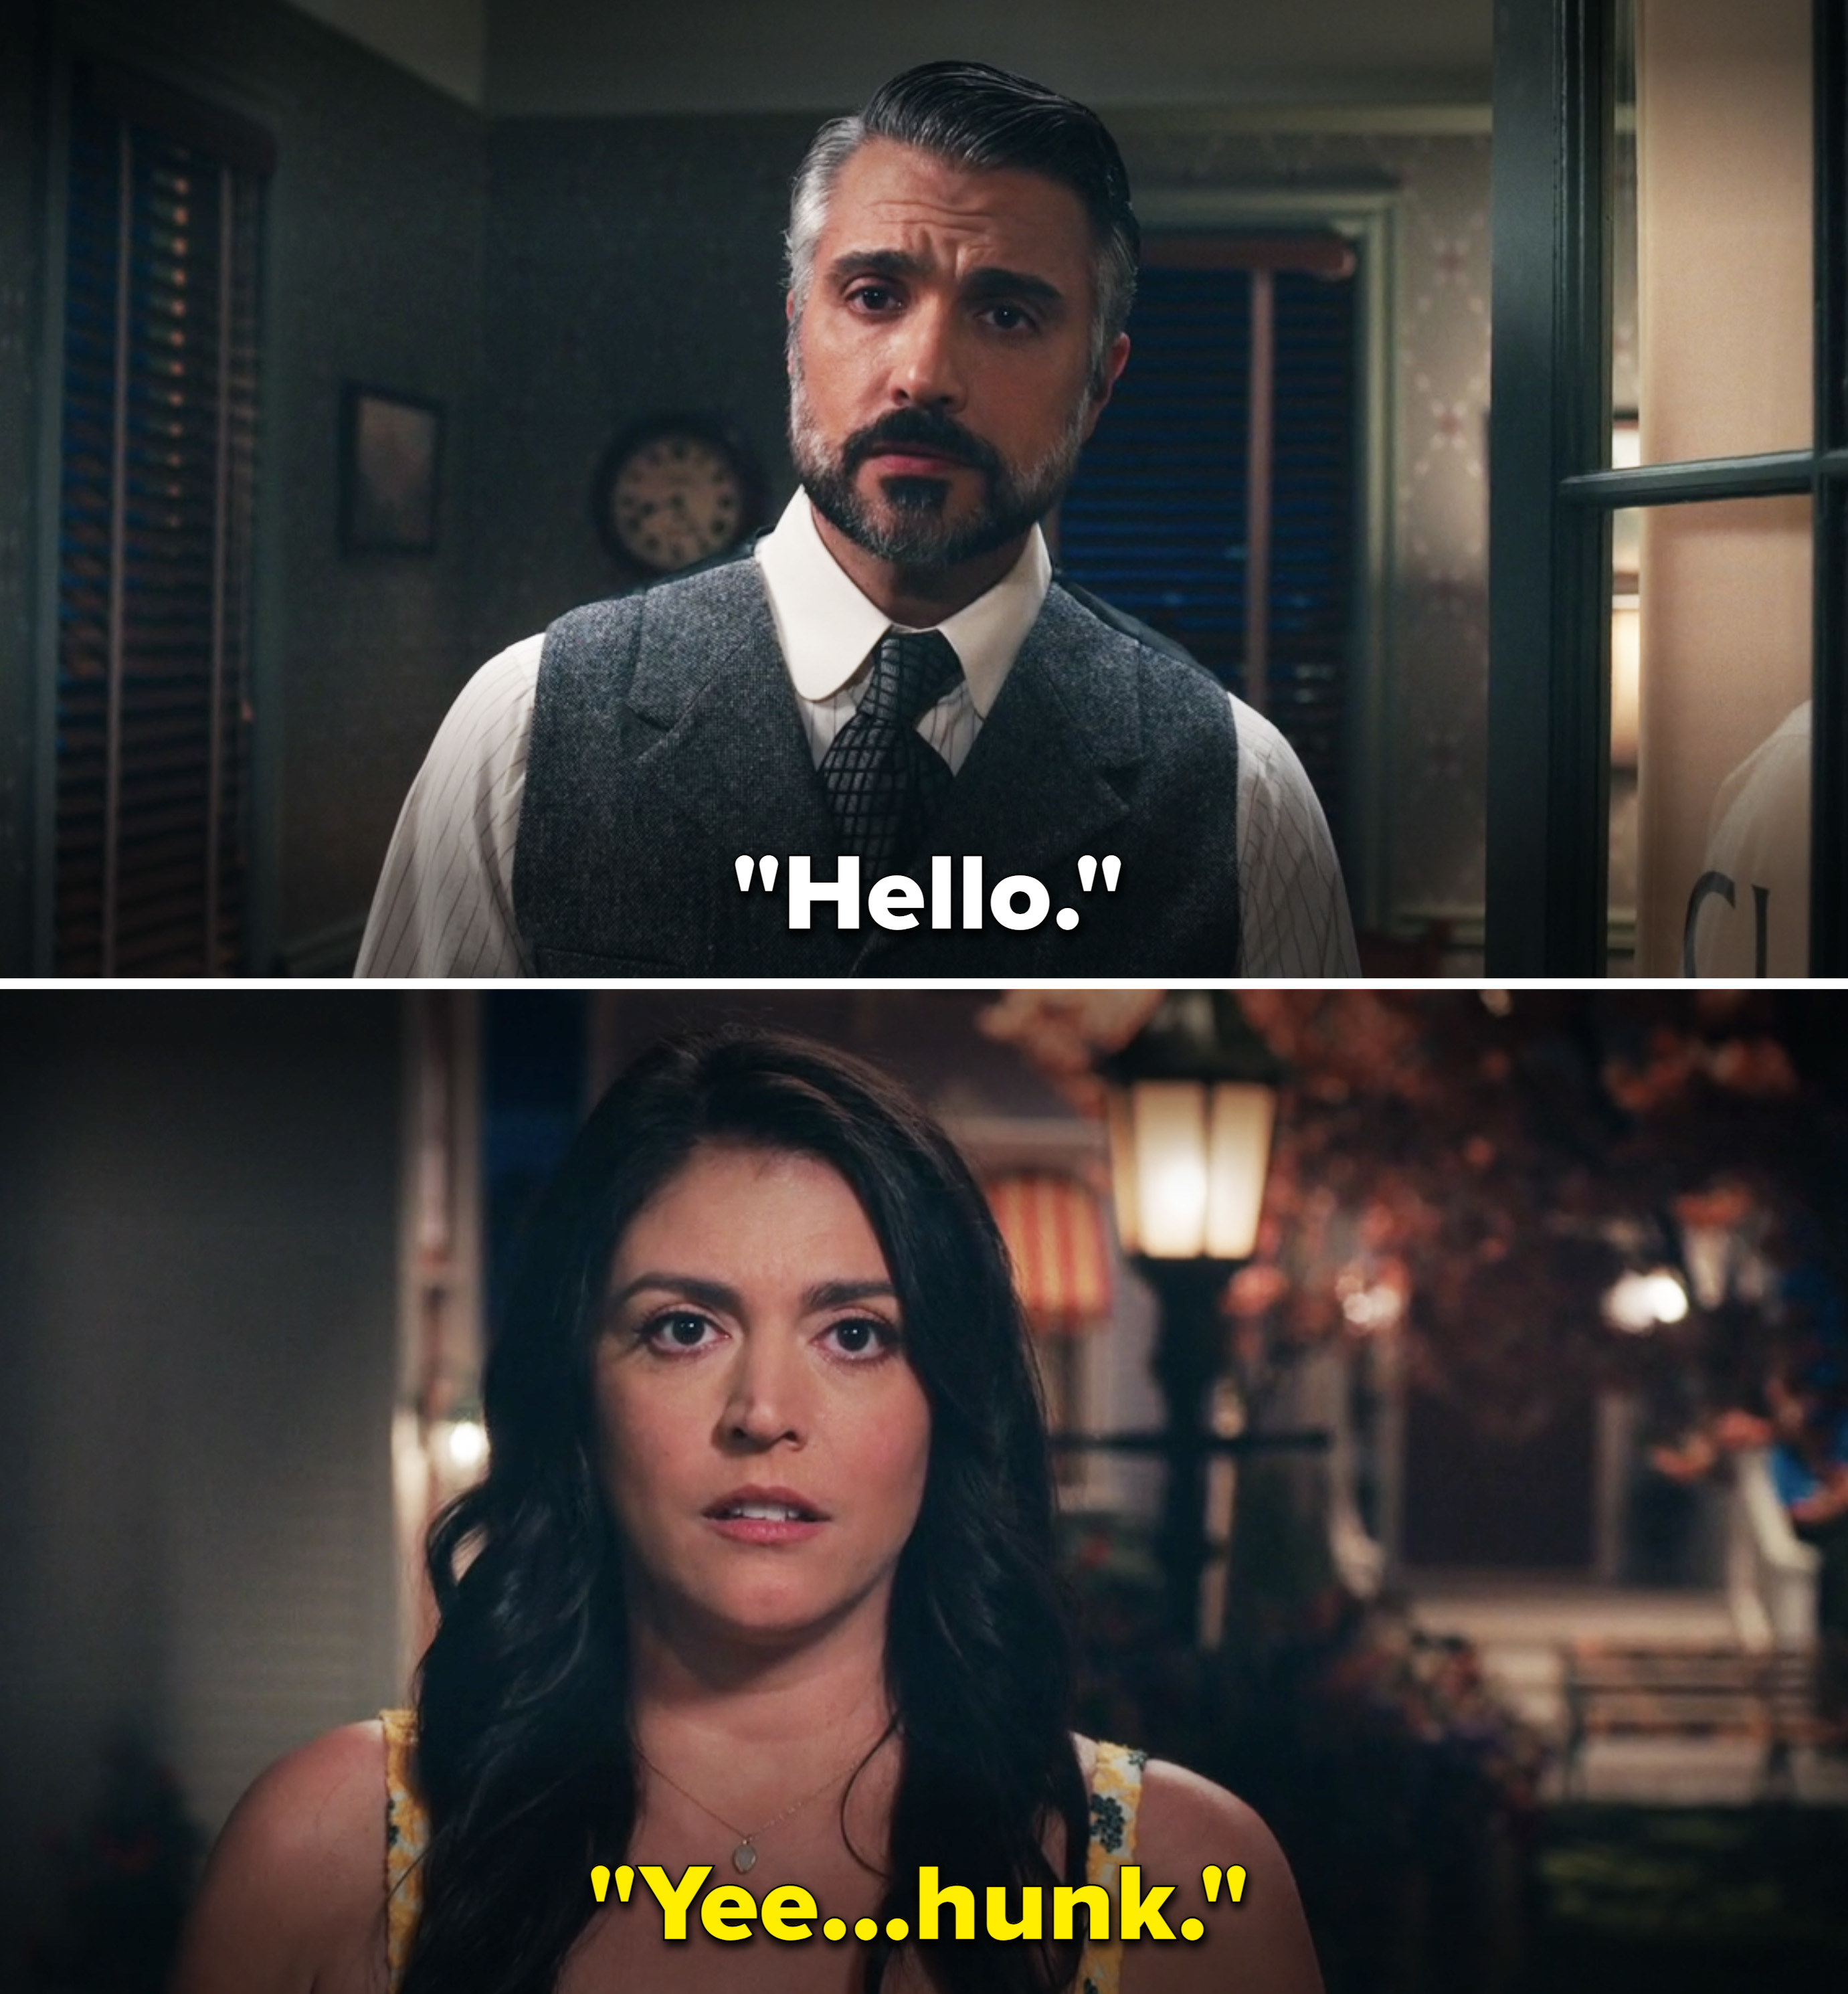 """Melissa saying, """"Yee-hunk"""" after seeing the doctor"""